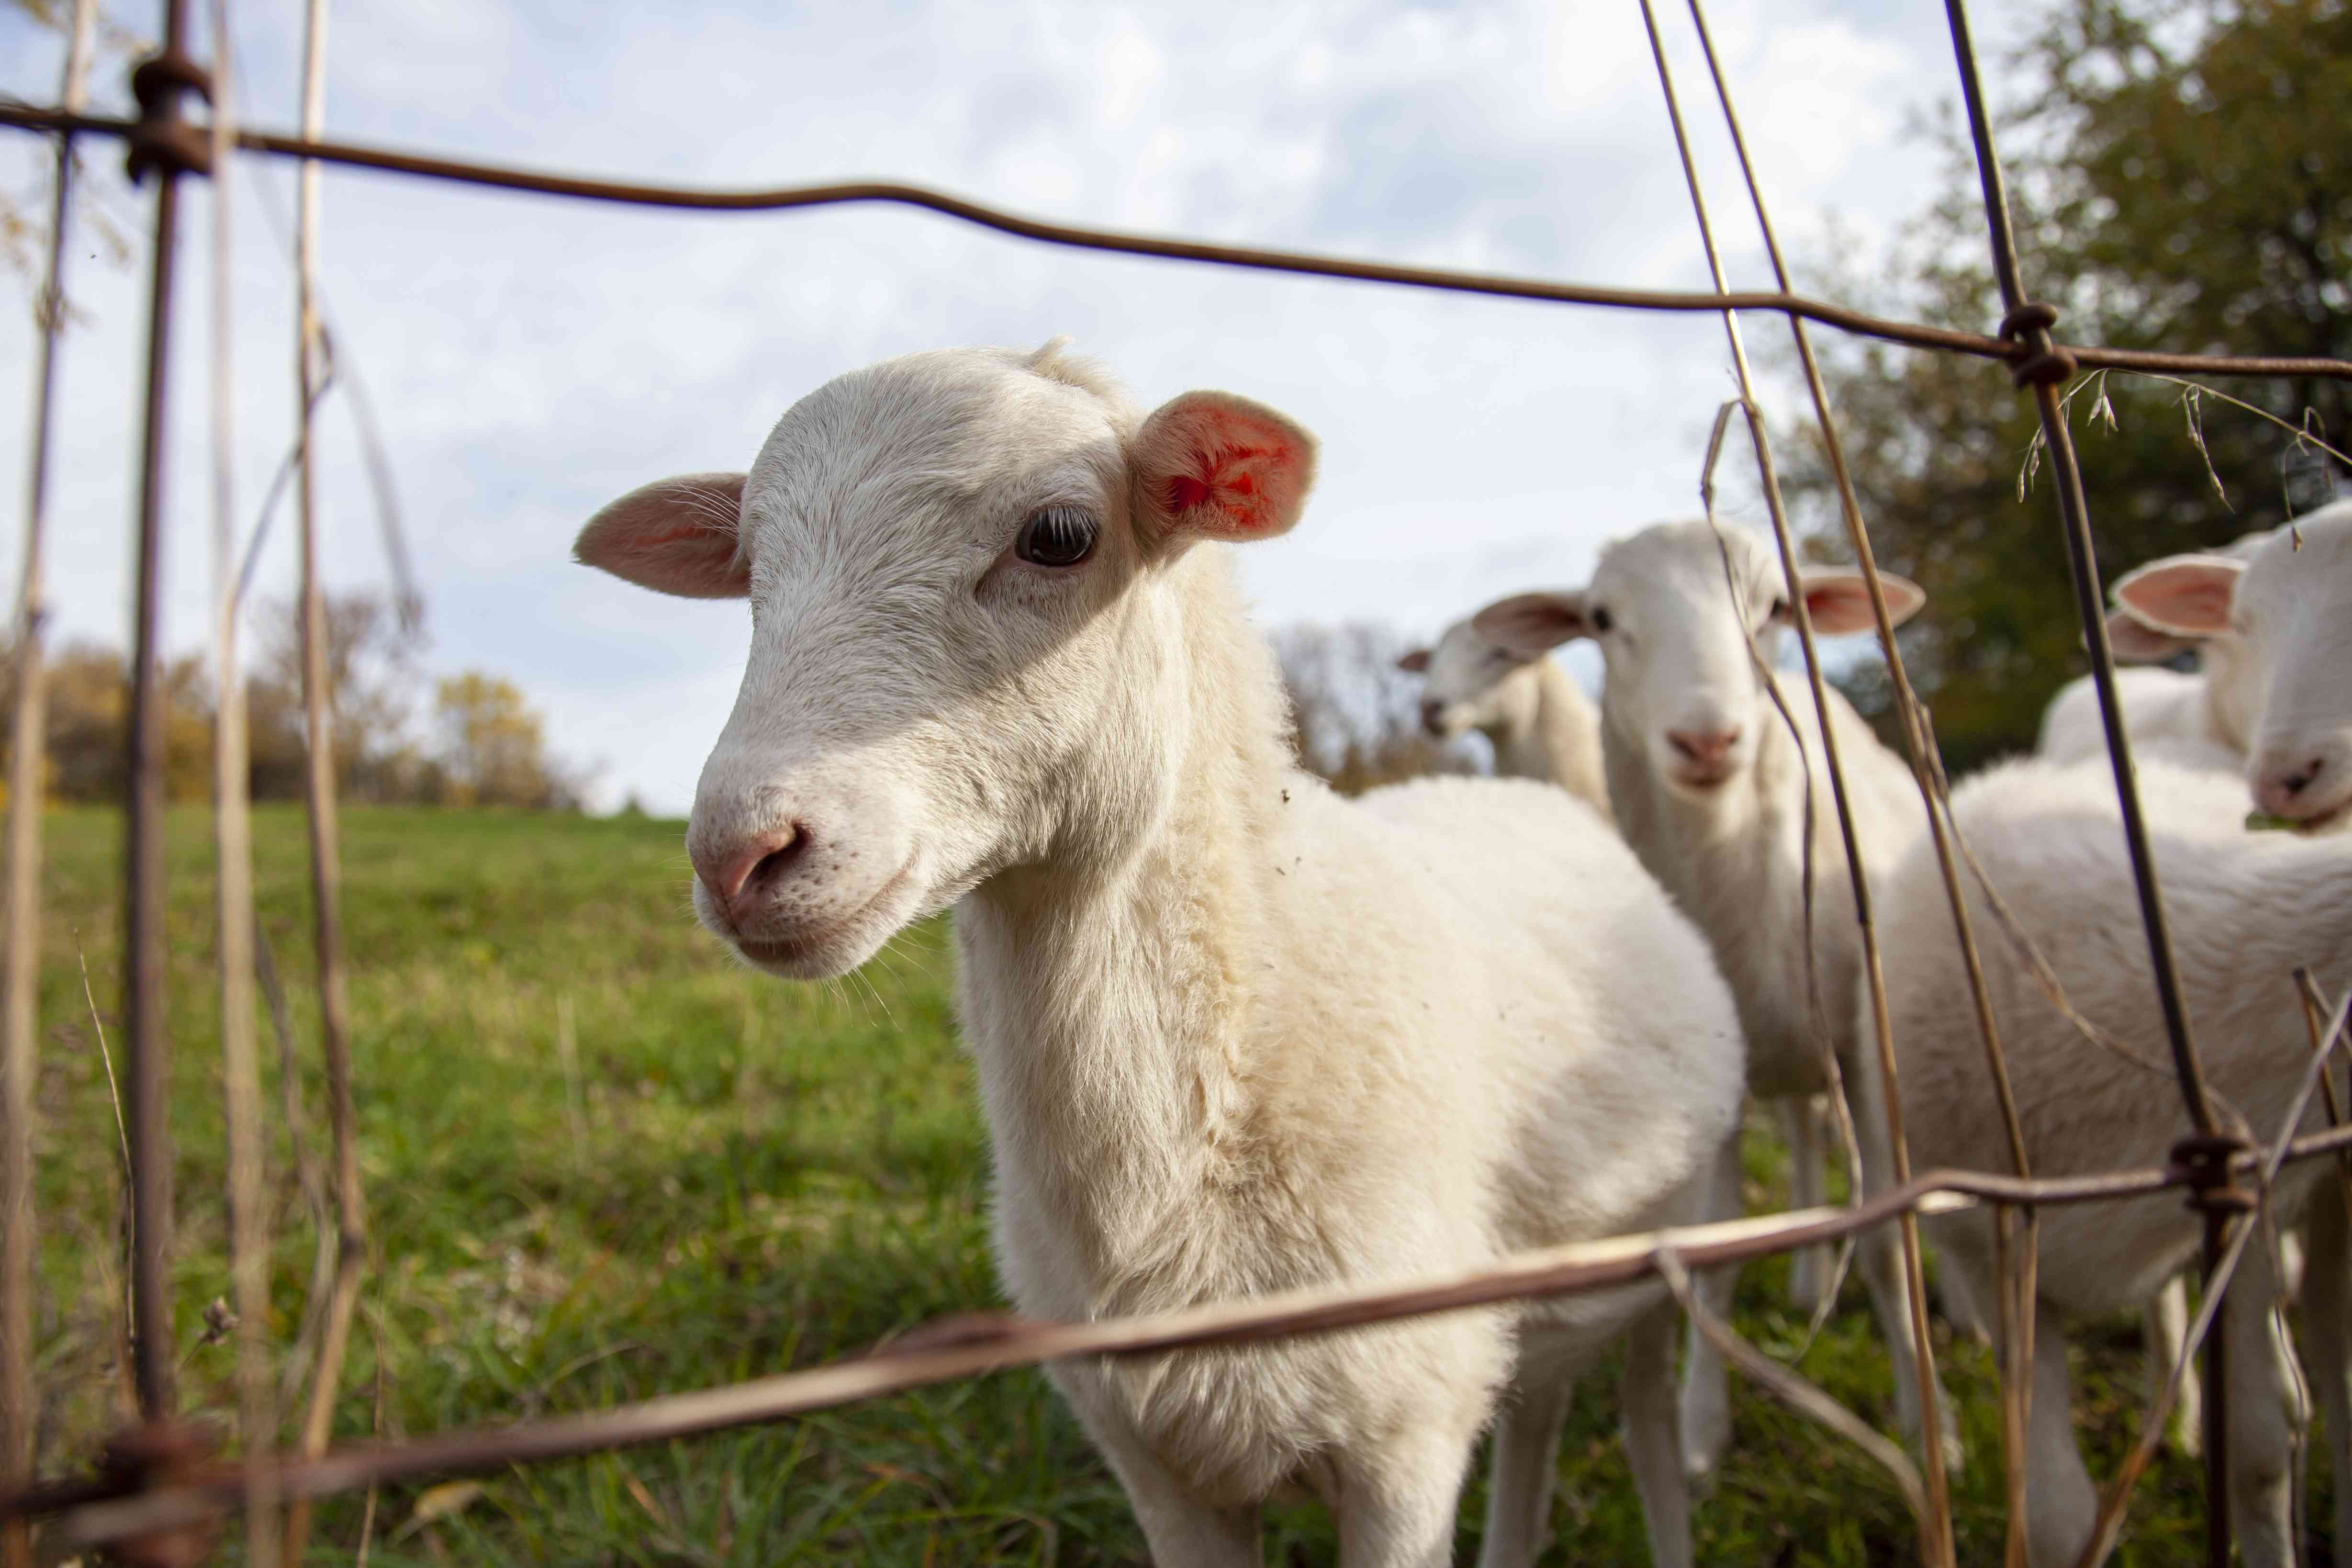 white goats peek through wire fence in field